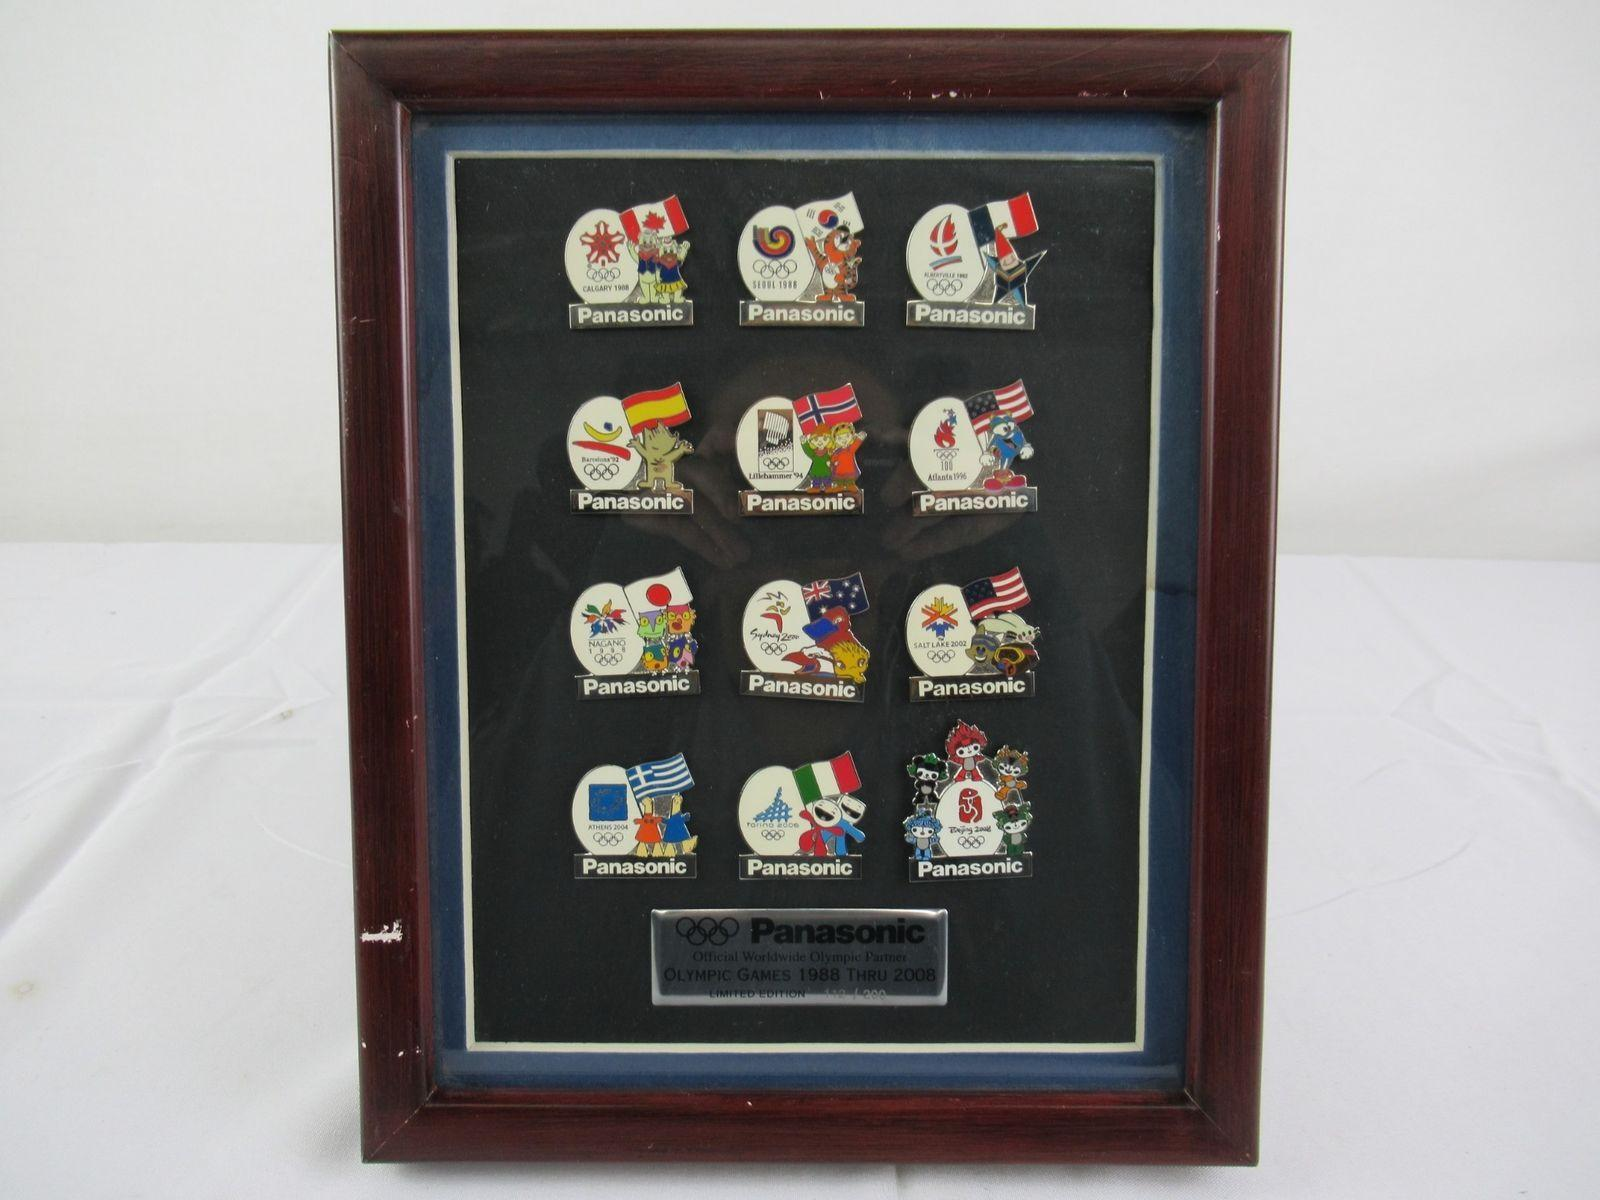 Panasonic Olympic Games 1988 Thru 2008 Ltd Edition 112/200 Collector Pins Framed